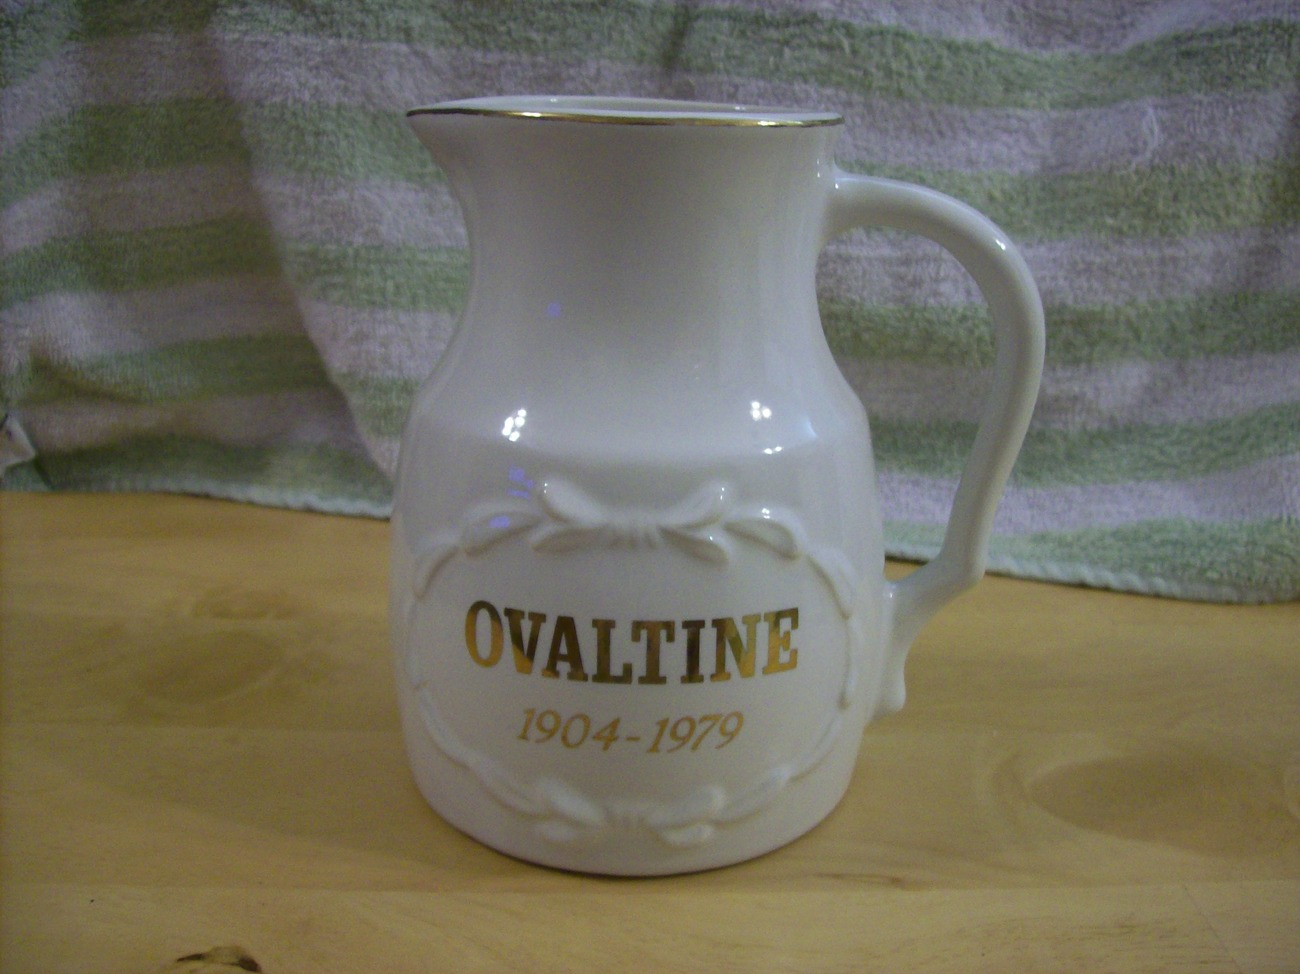 Vintage Ovaltine 1094-1979 75th anniversary pitcher